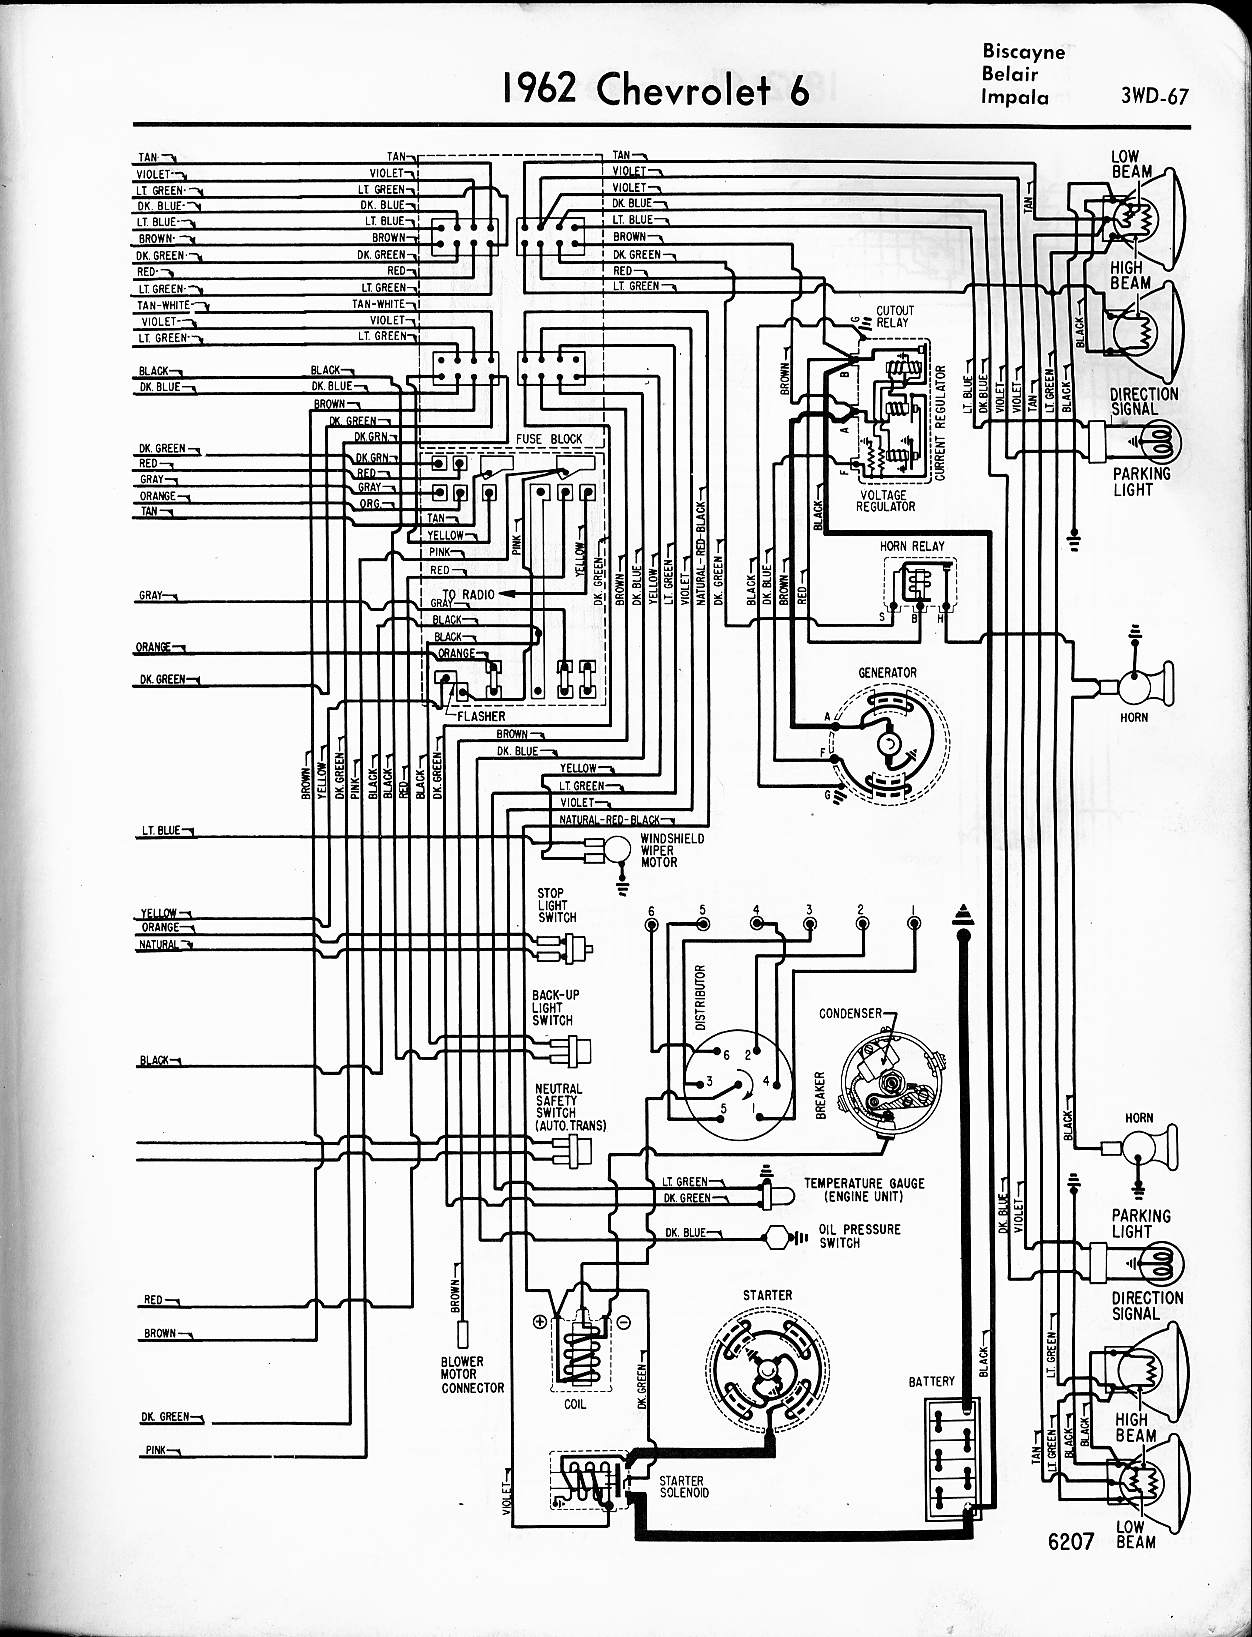 57 65 chevy wiring diagrams rh oldcarmanualproject com 66 Biscayne 62 Impala